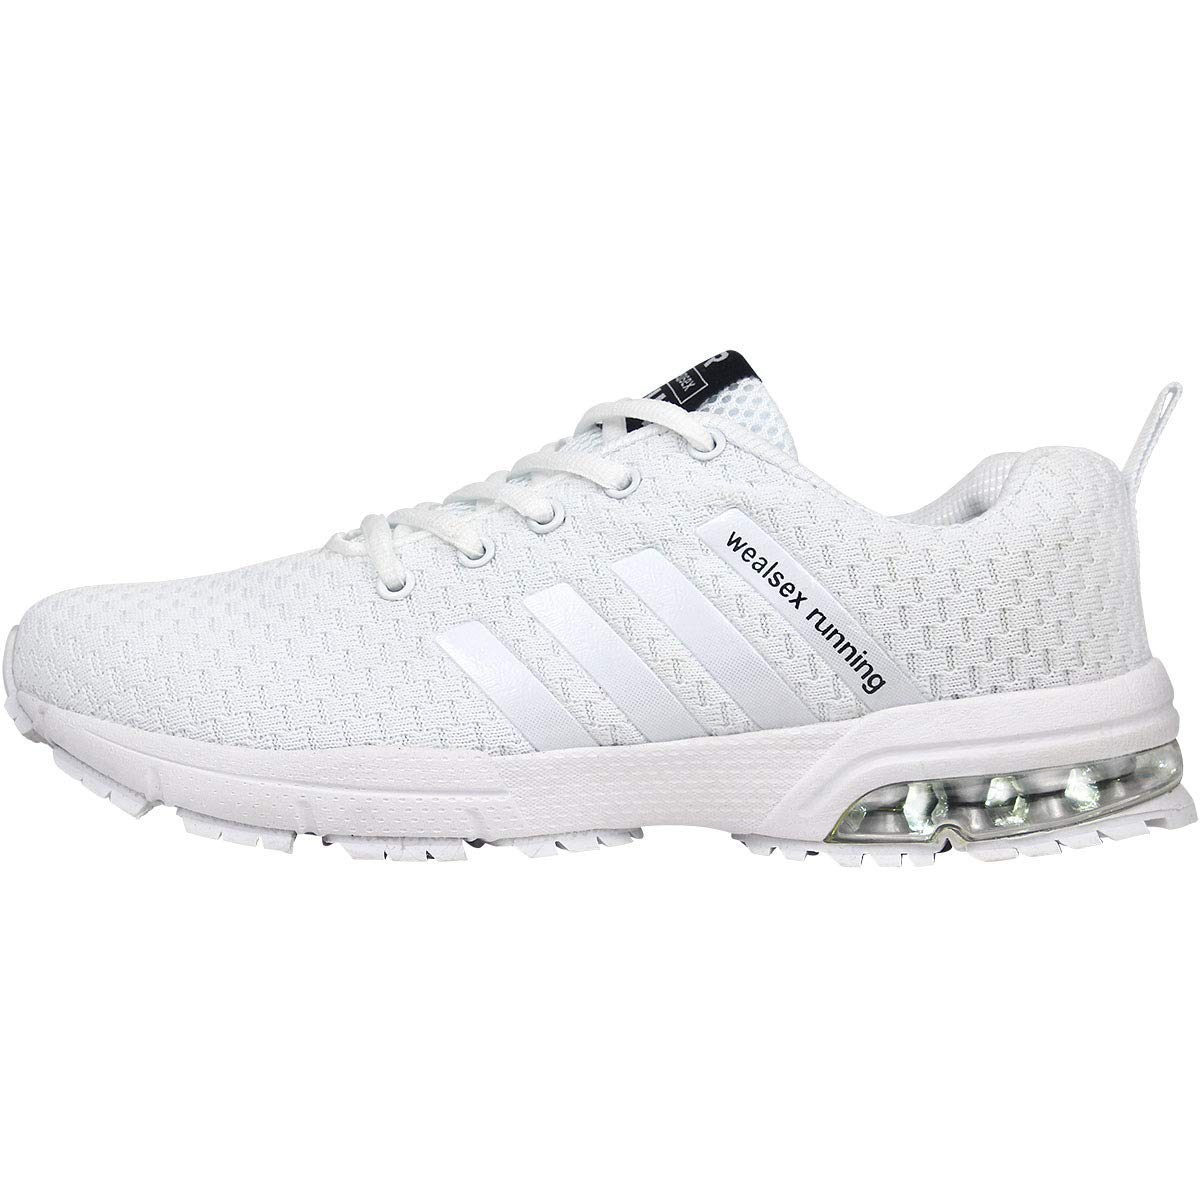 pretty nice ea24e d0a87 wealsex Chaussures Sports Running Course Fitness Gym Athlétique Baskets  Sneakers Air Chaussures Amorti Homme 39-46  Amazon.fr  Chaussures et Sacs